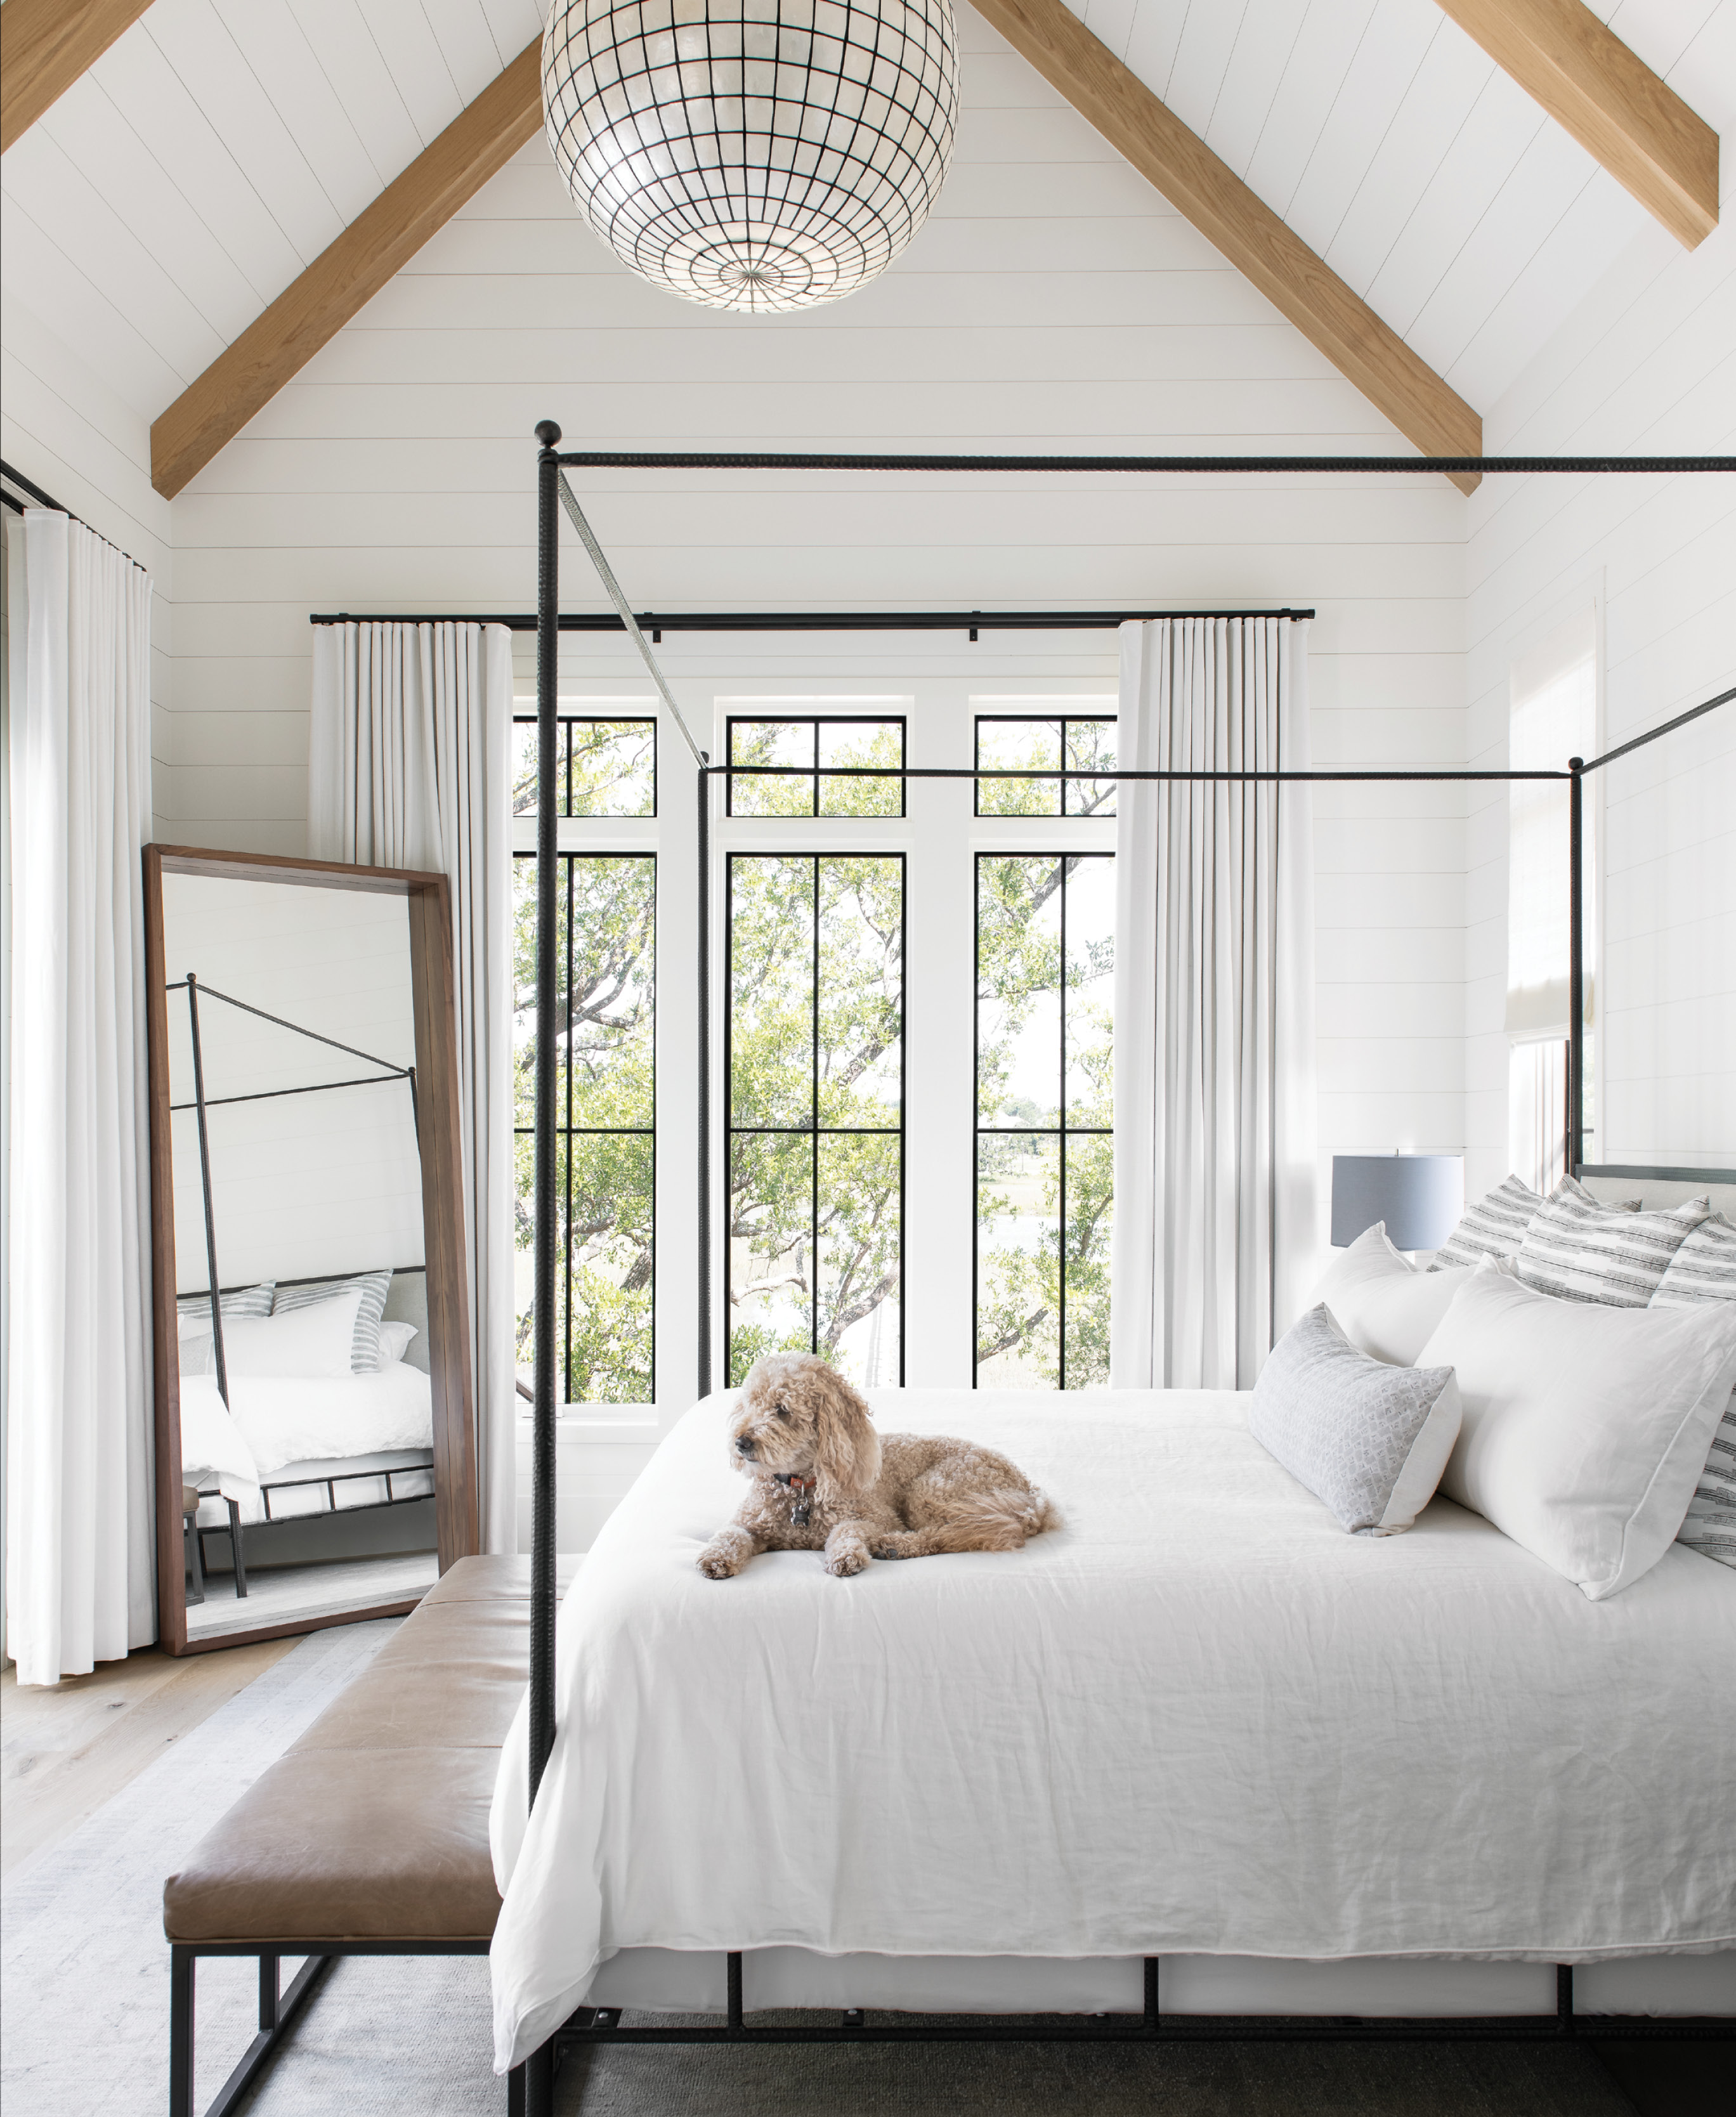 """Simply Luxe: The paired-down master suite feels glamorous yet comfortable. Tying into the black steel of the windows, the iron-framed """"Marco Bed"""" by Oly Studio is softened by plush Peacock Alley bedding and a worn leather bench atop a vintage Oushak rug. A Restoration Hardware chandelier and Room & Board mirror complete the space."""